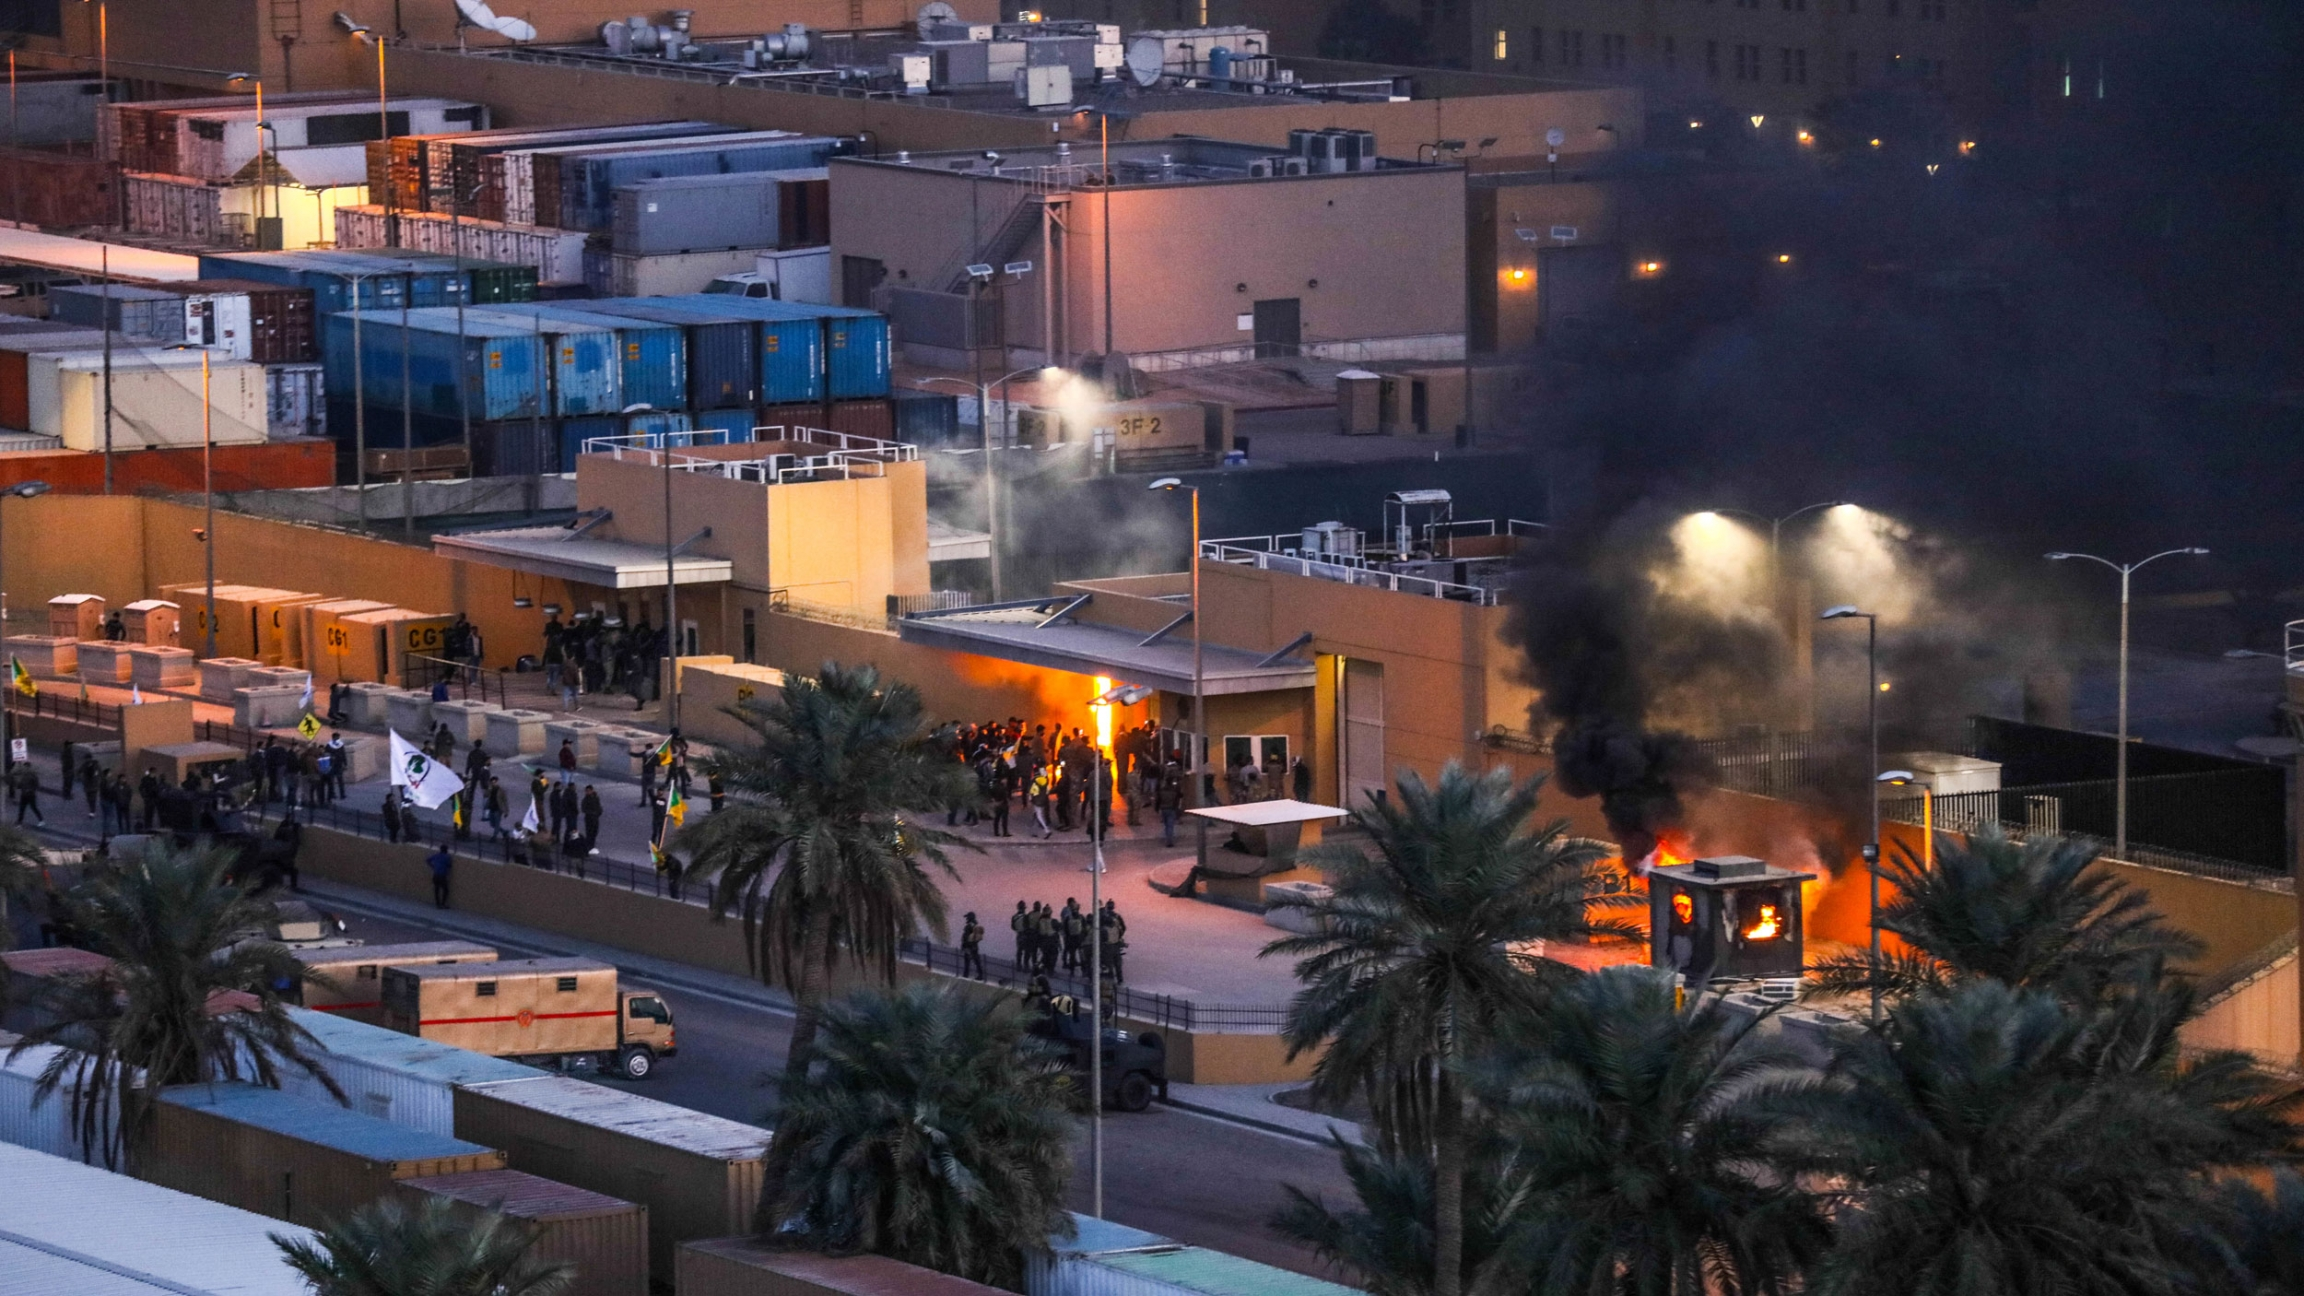 The khaki-color wall of the US Embassy in Baghdad is shown smoking from two fires set by a group of demonstrators.